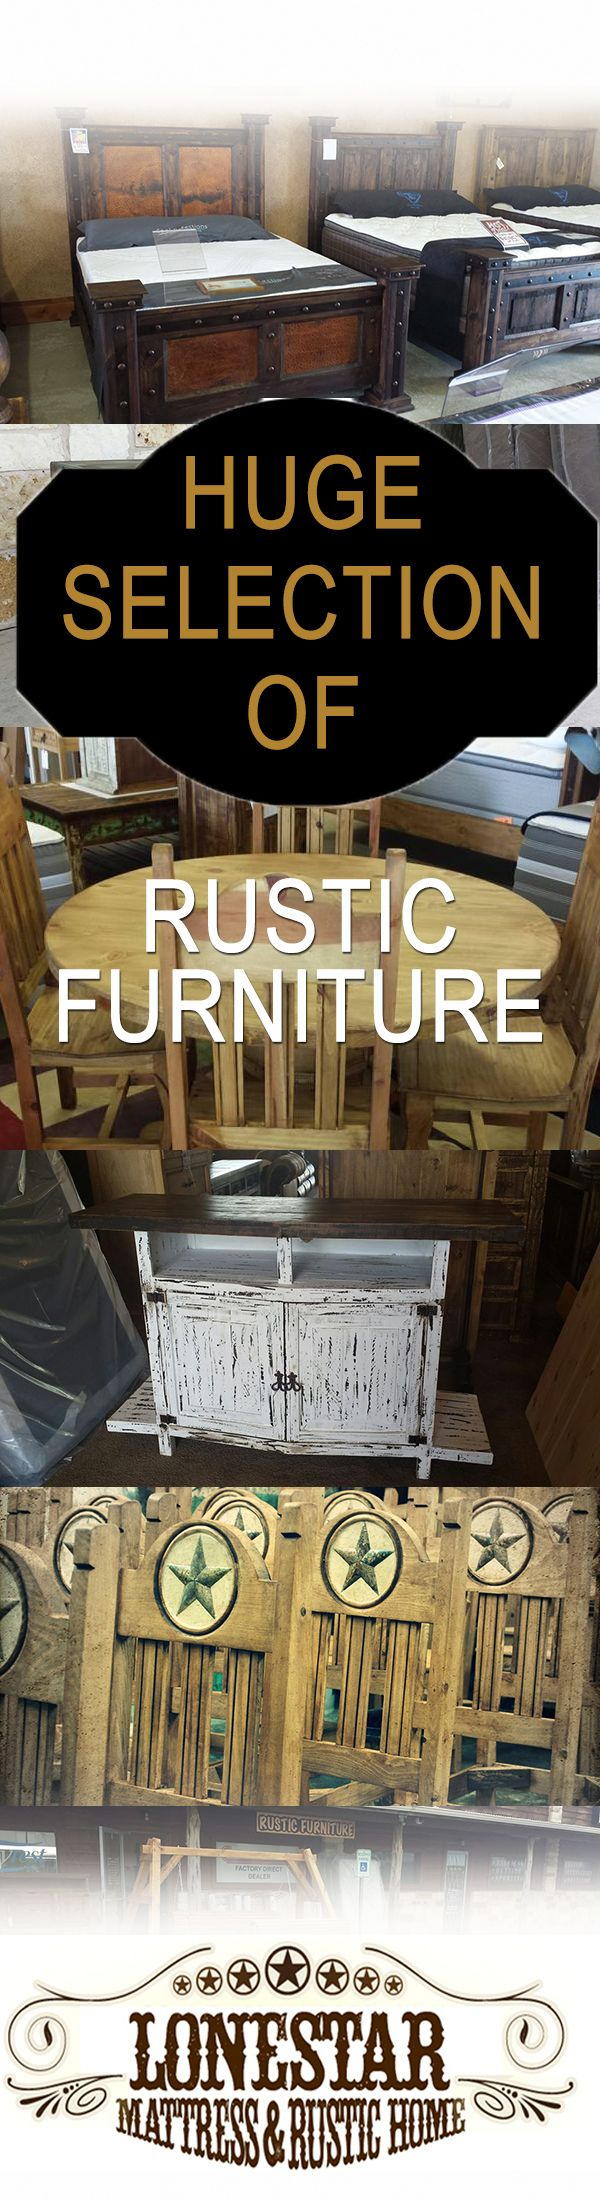 We have a HUGE selection of rustic furniture. Lonestar Mattress Wholesale has everything you need to get your home in order. You'll never pay retail pricing here on rustic furniture. Lonestar Mattress Wholesale is located at: 4105 W. 2nd Street HWY 79, Suite D in Taylor, Texas. www.gotmattress.com